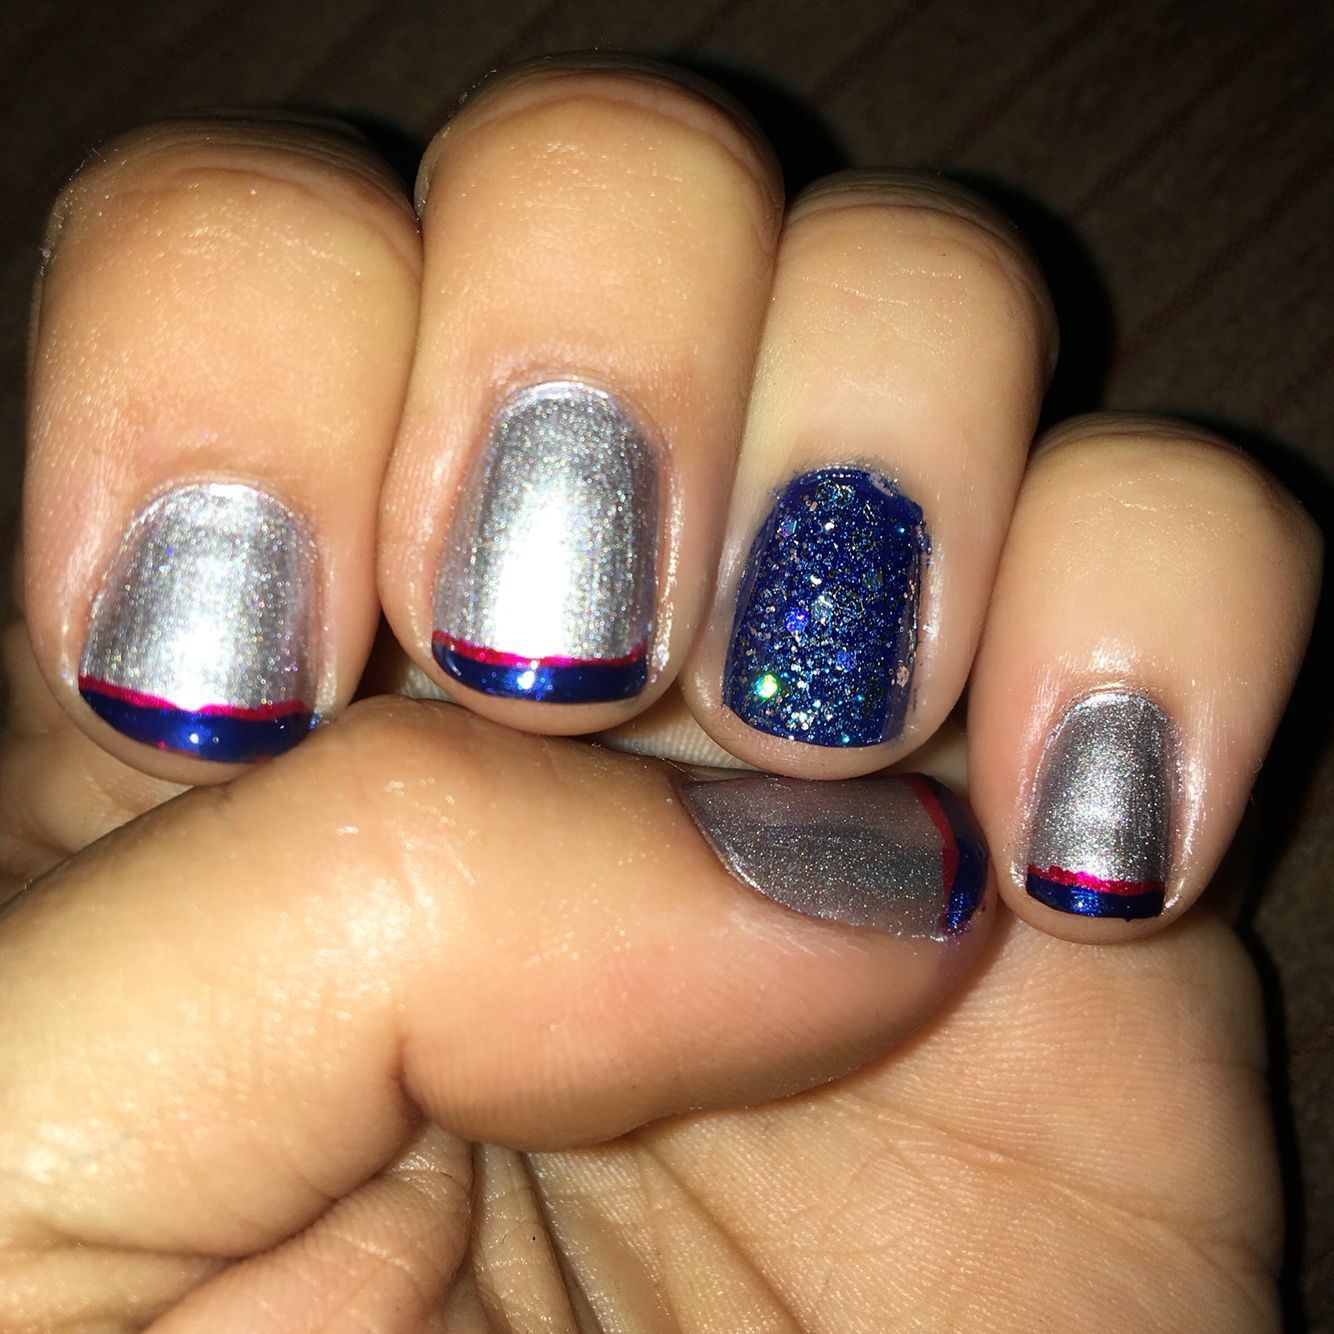 Diy Nails Manicure In New England Patriots Colors Diy Nails Manicure Patriotic Nails Diy Patriots Nail Art